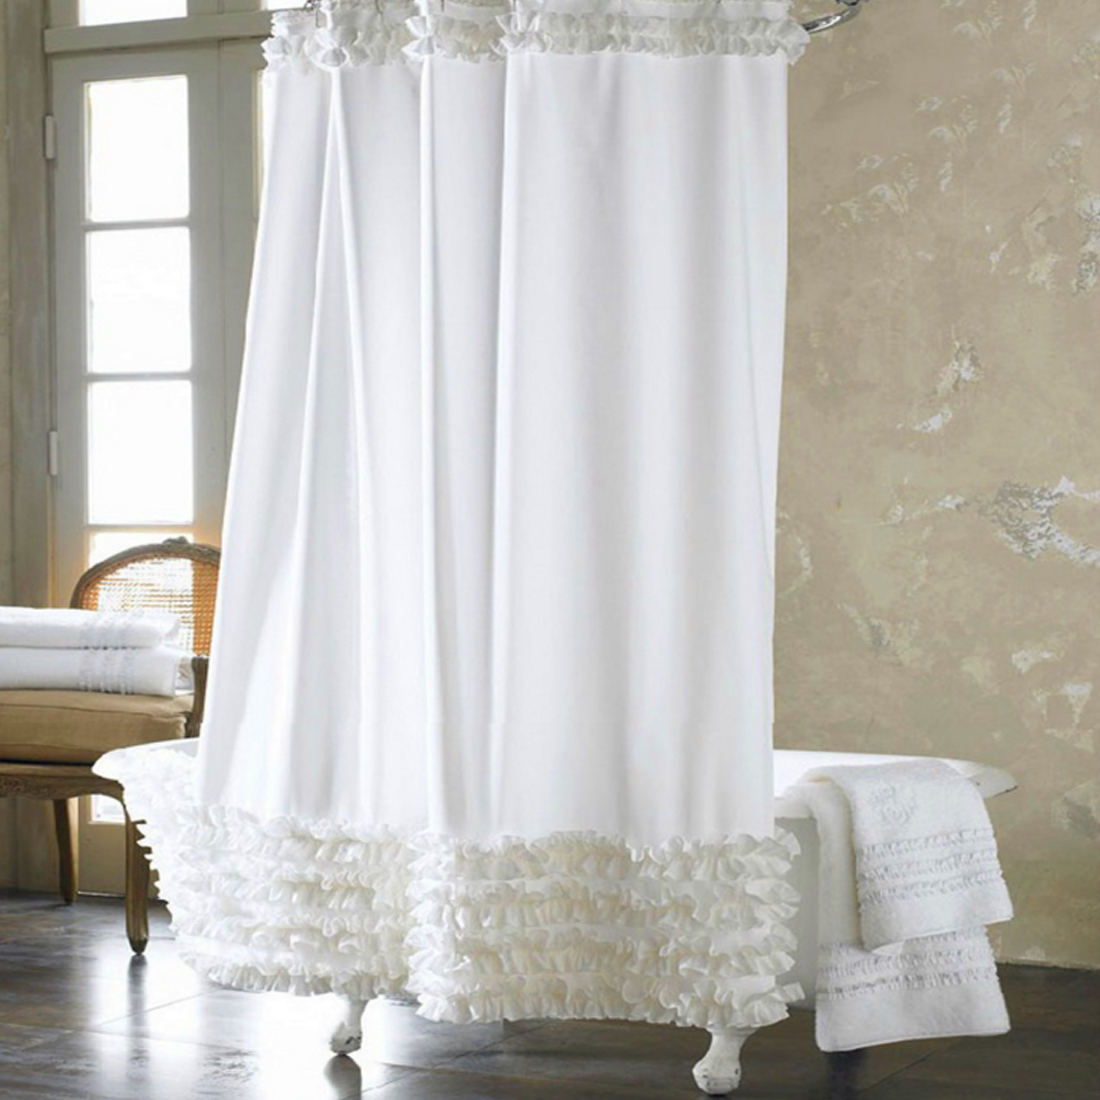 Image 4 - Promotions Home Decoration Bathroom Shower Curtain Waterproof Solid Polyester Fabric Lace Bath Curtain Elegant Cortina +12 Hooks-in Shower Curtains from Home & Garden